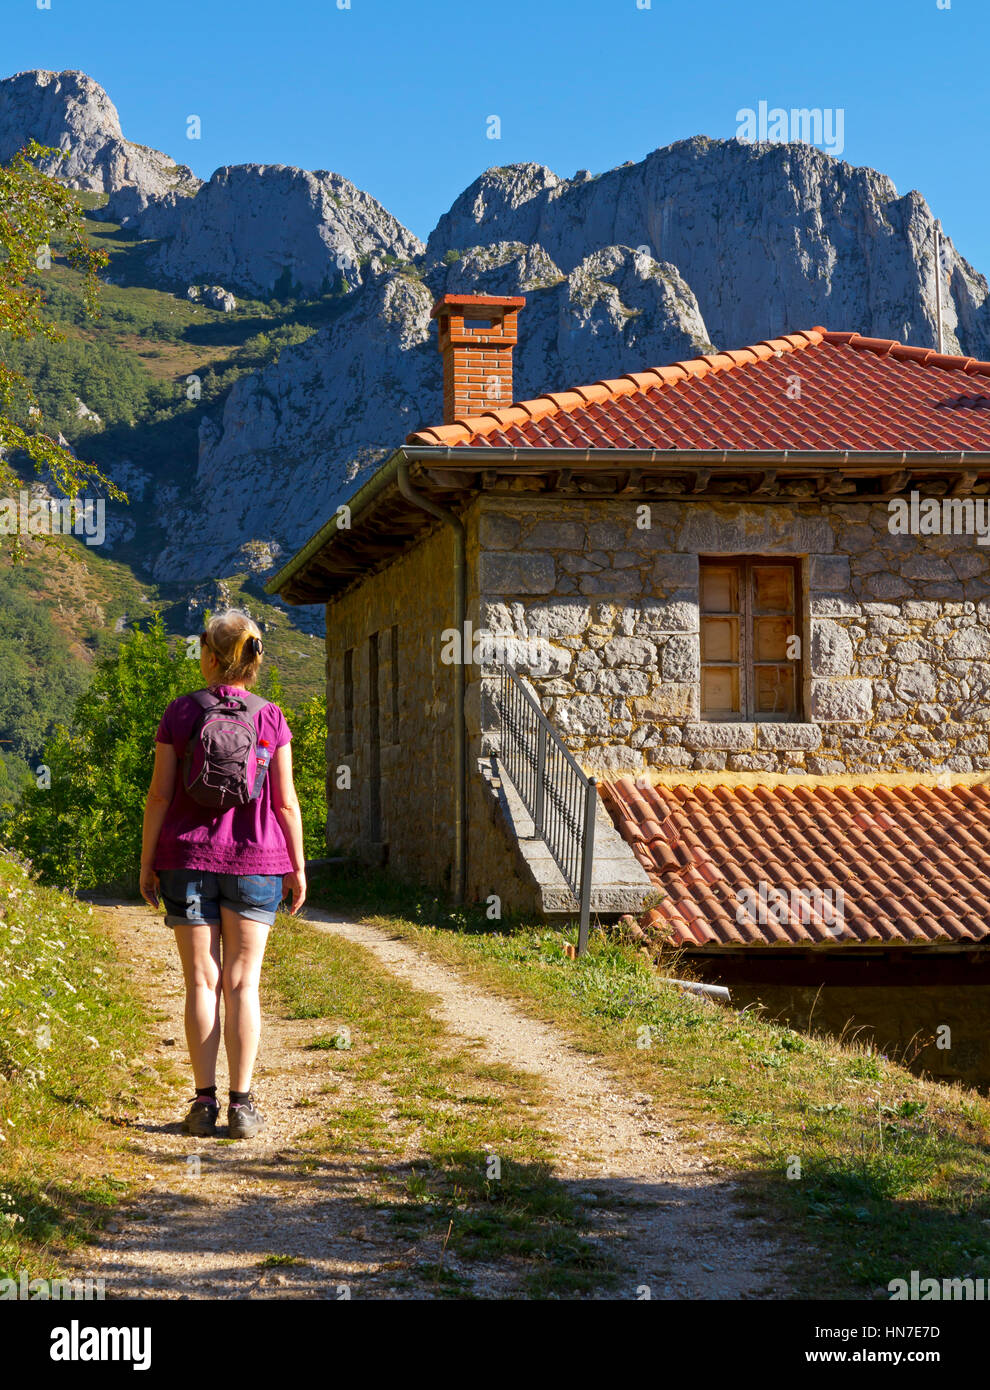 Woman hiking near Cucayo a mountain village in the Picos de Europa National Park in Cantabria northern Spain - Stock Image